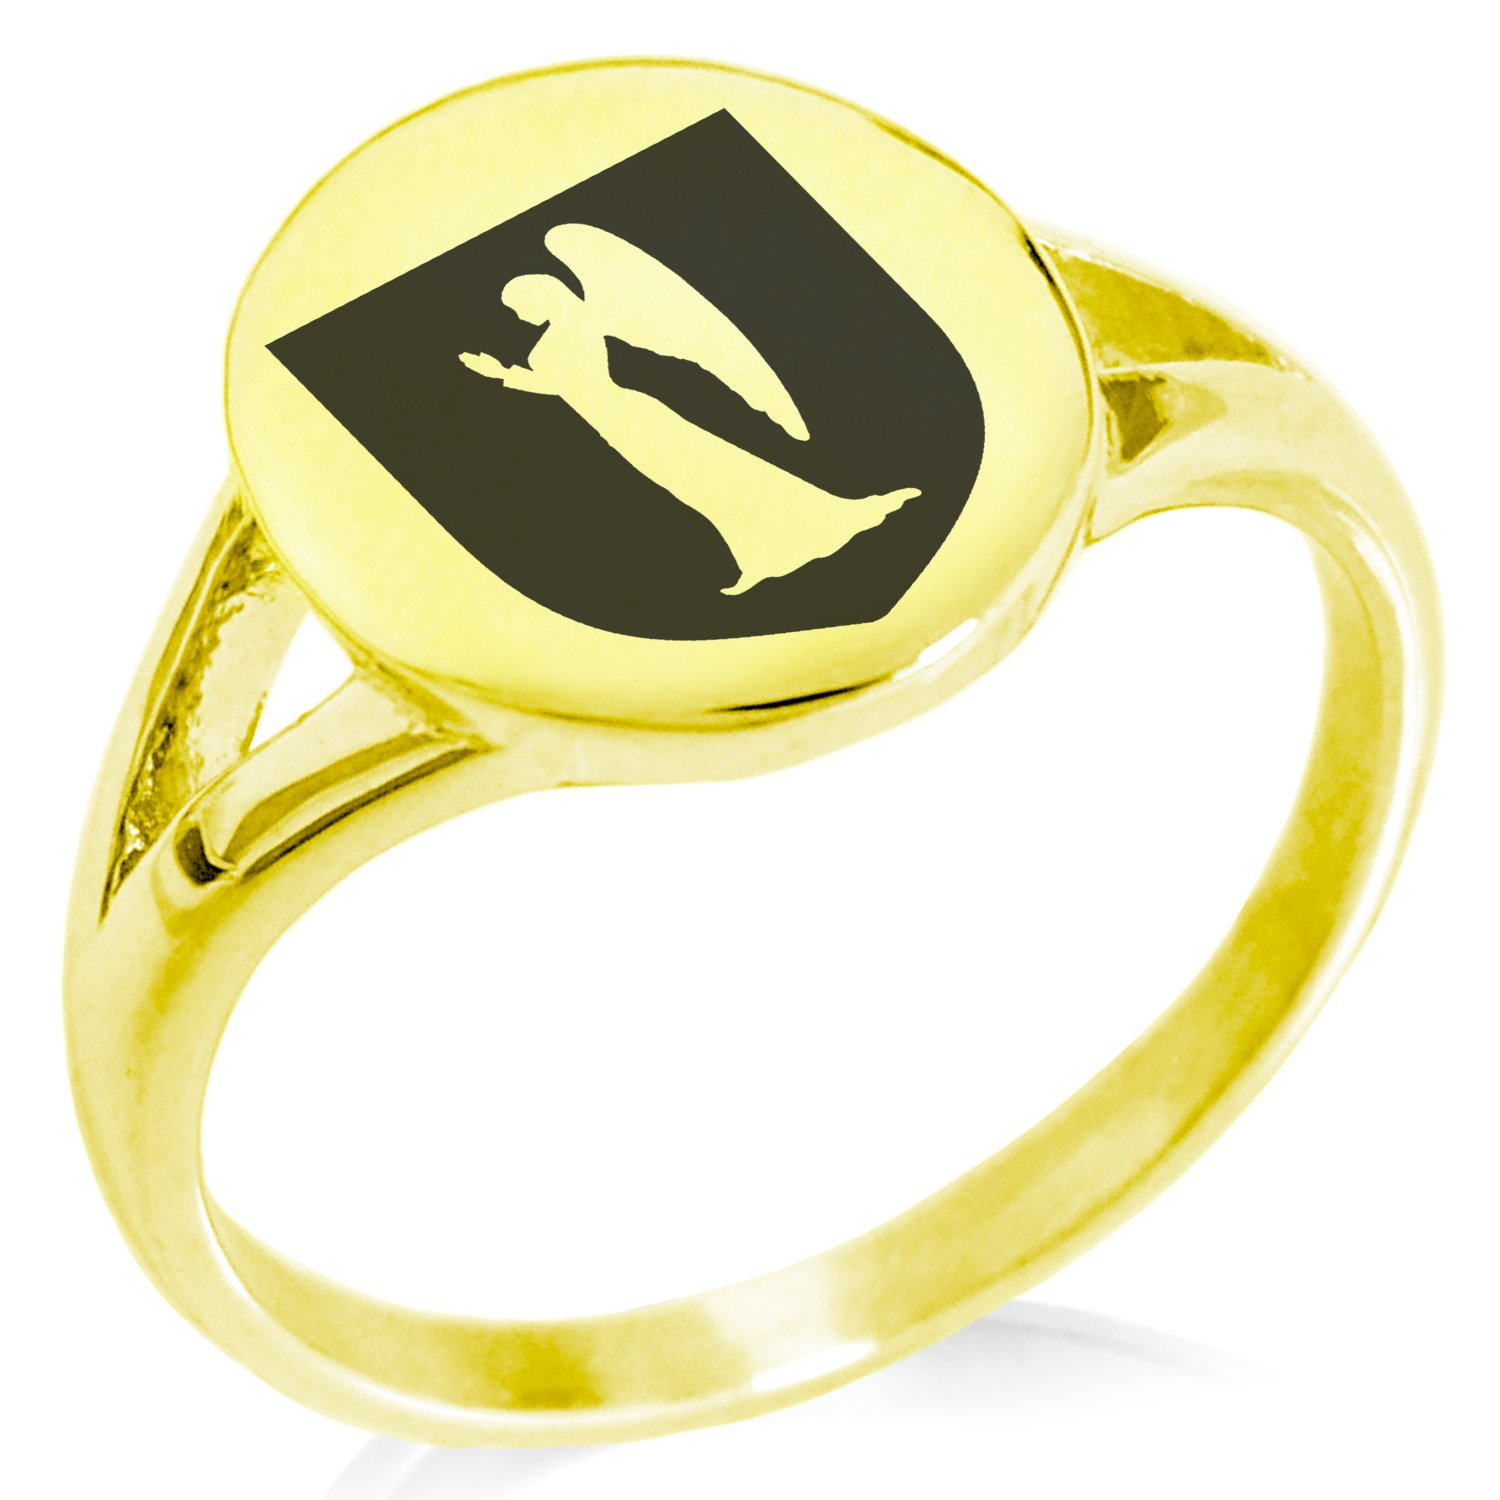 Tioneer Gold Plated Stainless Steel Angel Divinity Coat of Arms Shield Symbol Minimalist Oval Top Polished Statement Ring, Size 10